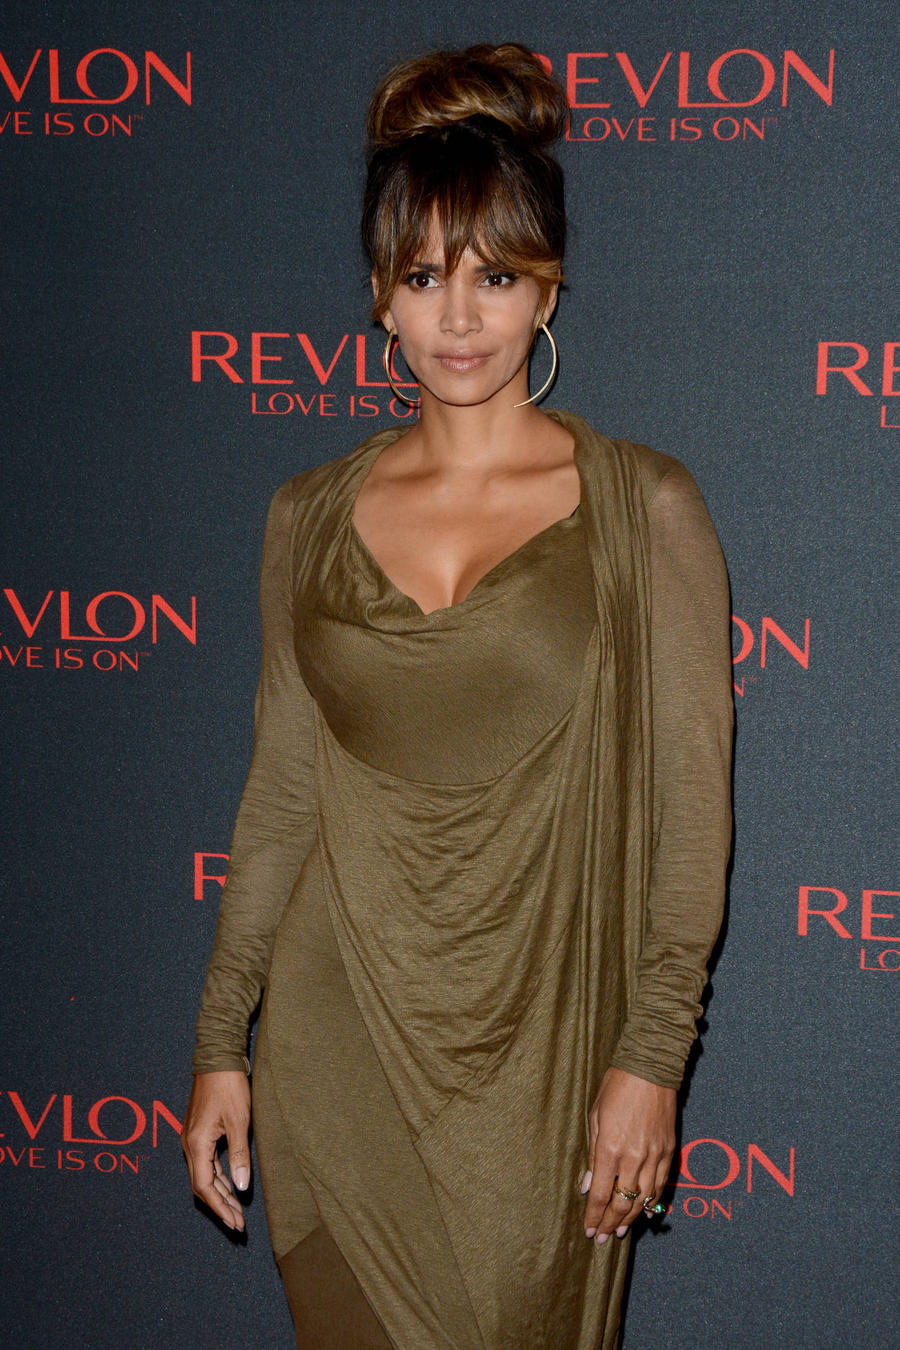 Halle Berry Joins Social Media With Provocative Topless Shot